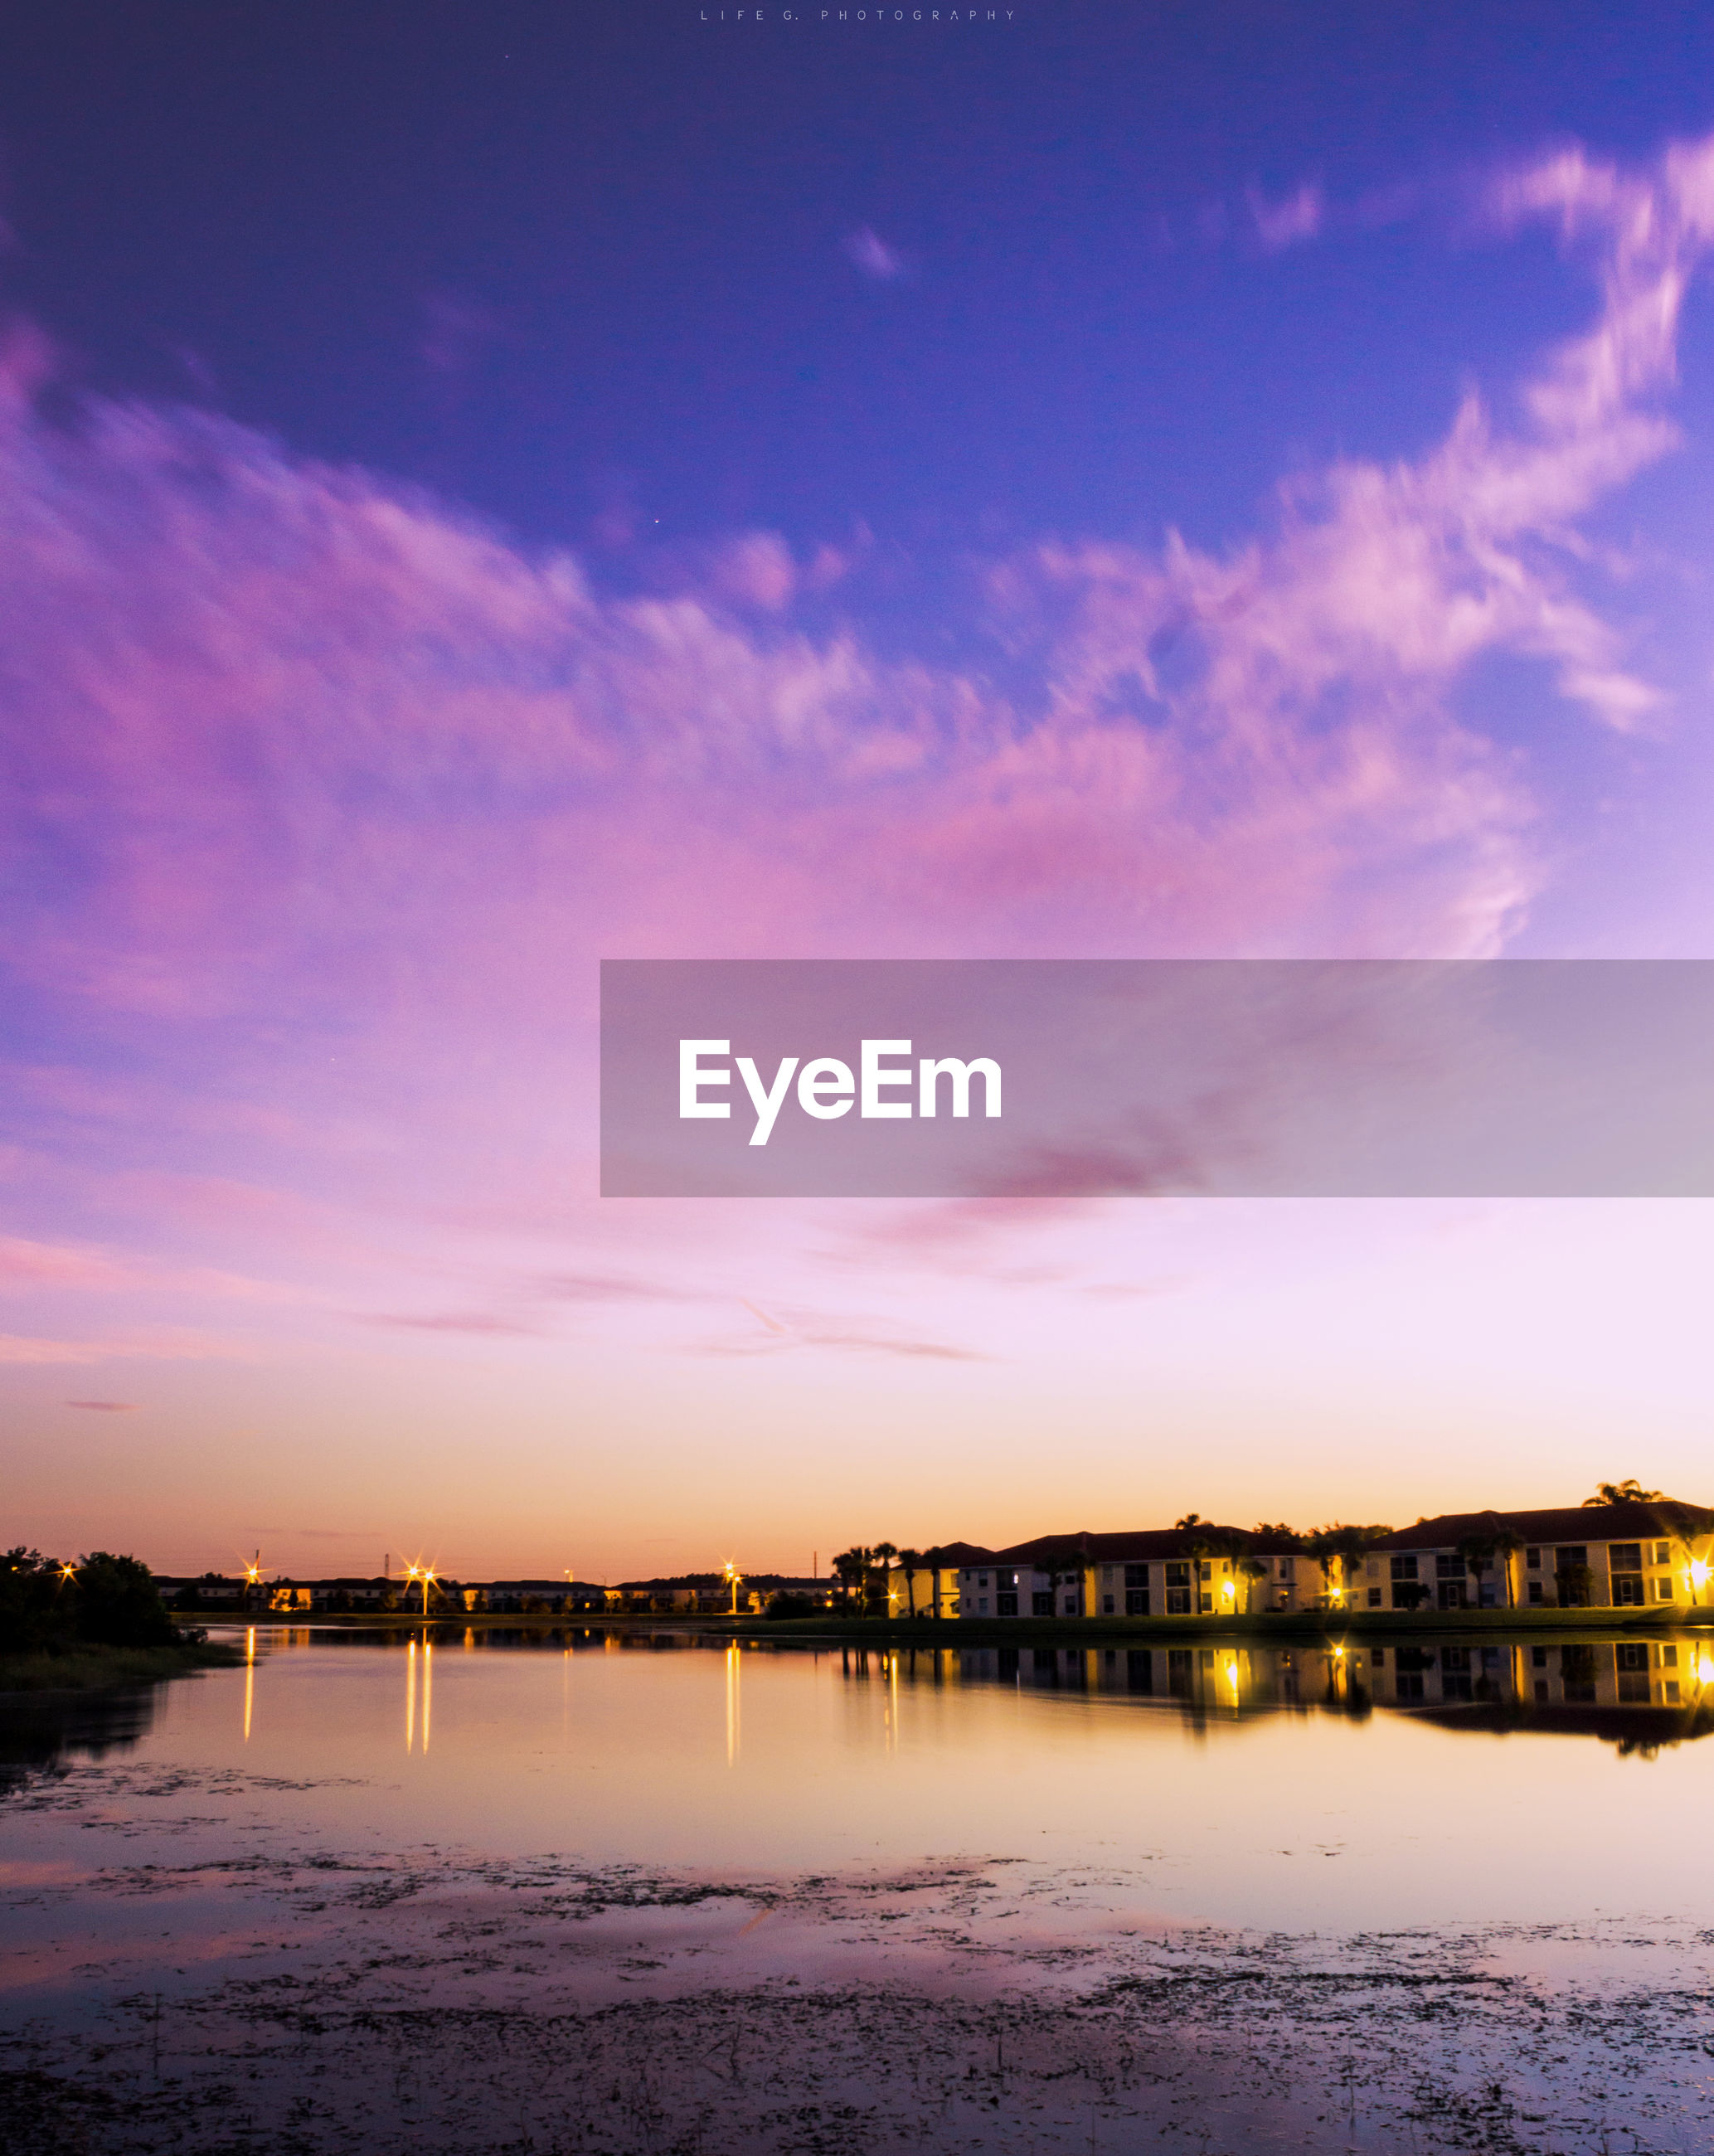 Houses by river with sky in background